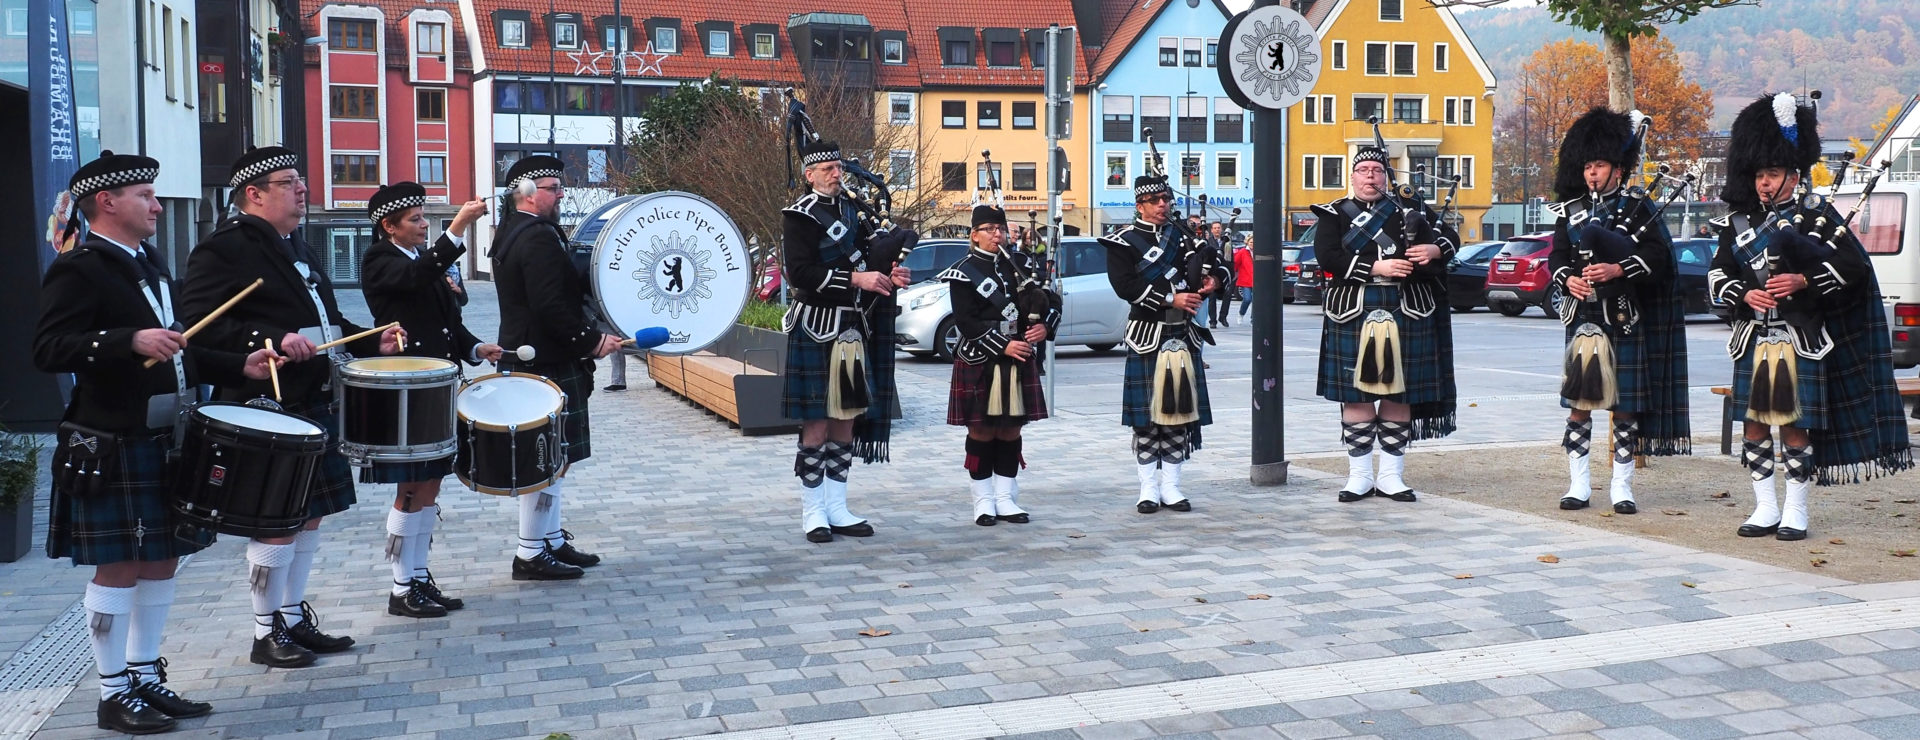 Berlin Police Pipe Band